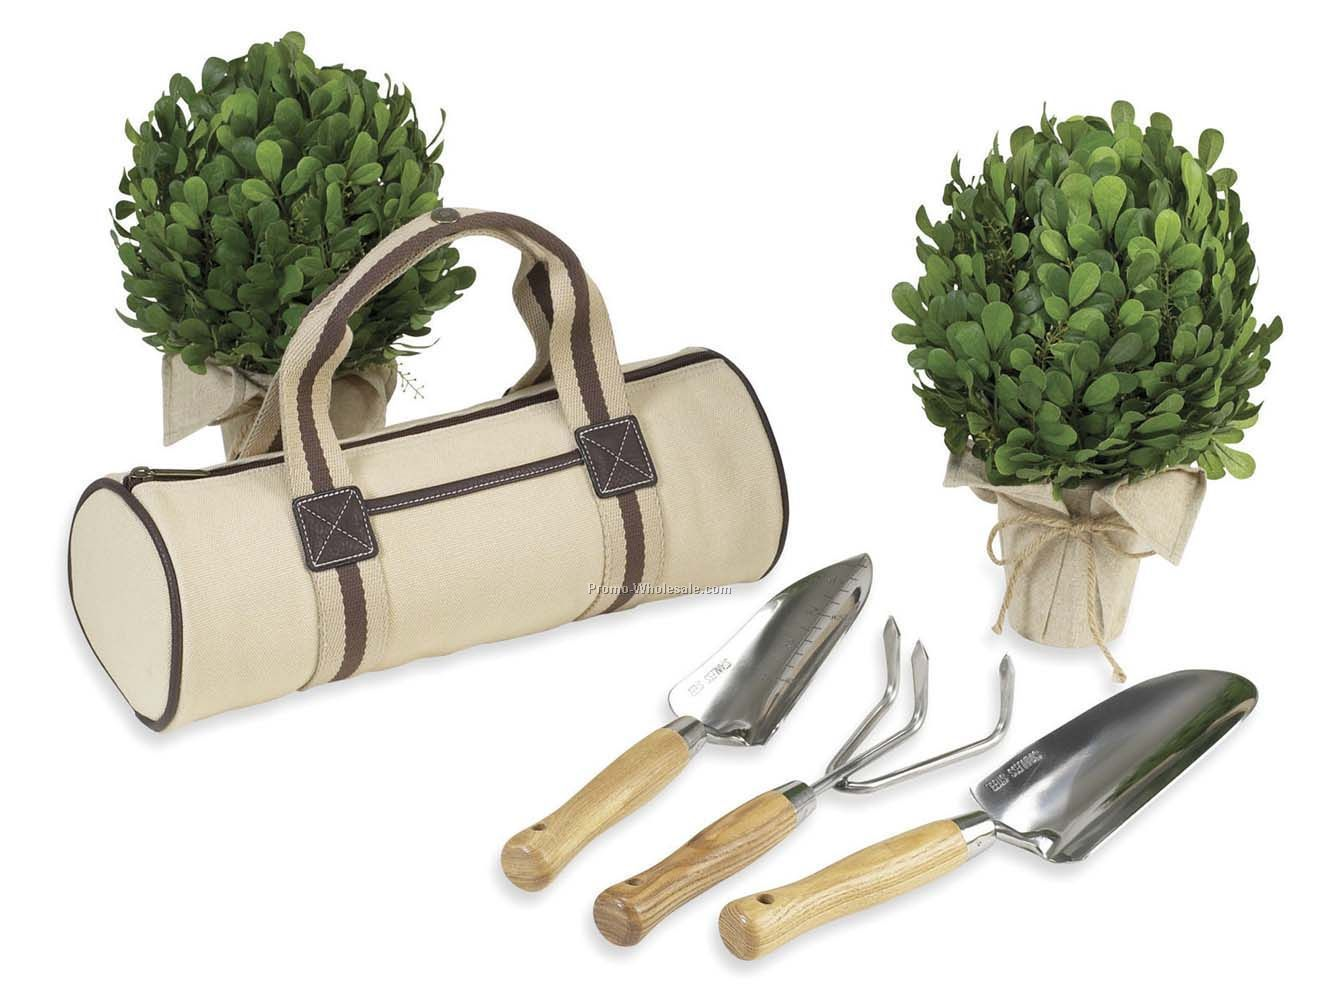 Garden supplies china wholesale garden supplies page3 for Gardening tools wholesale